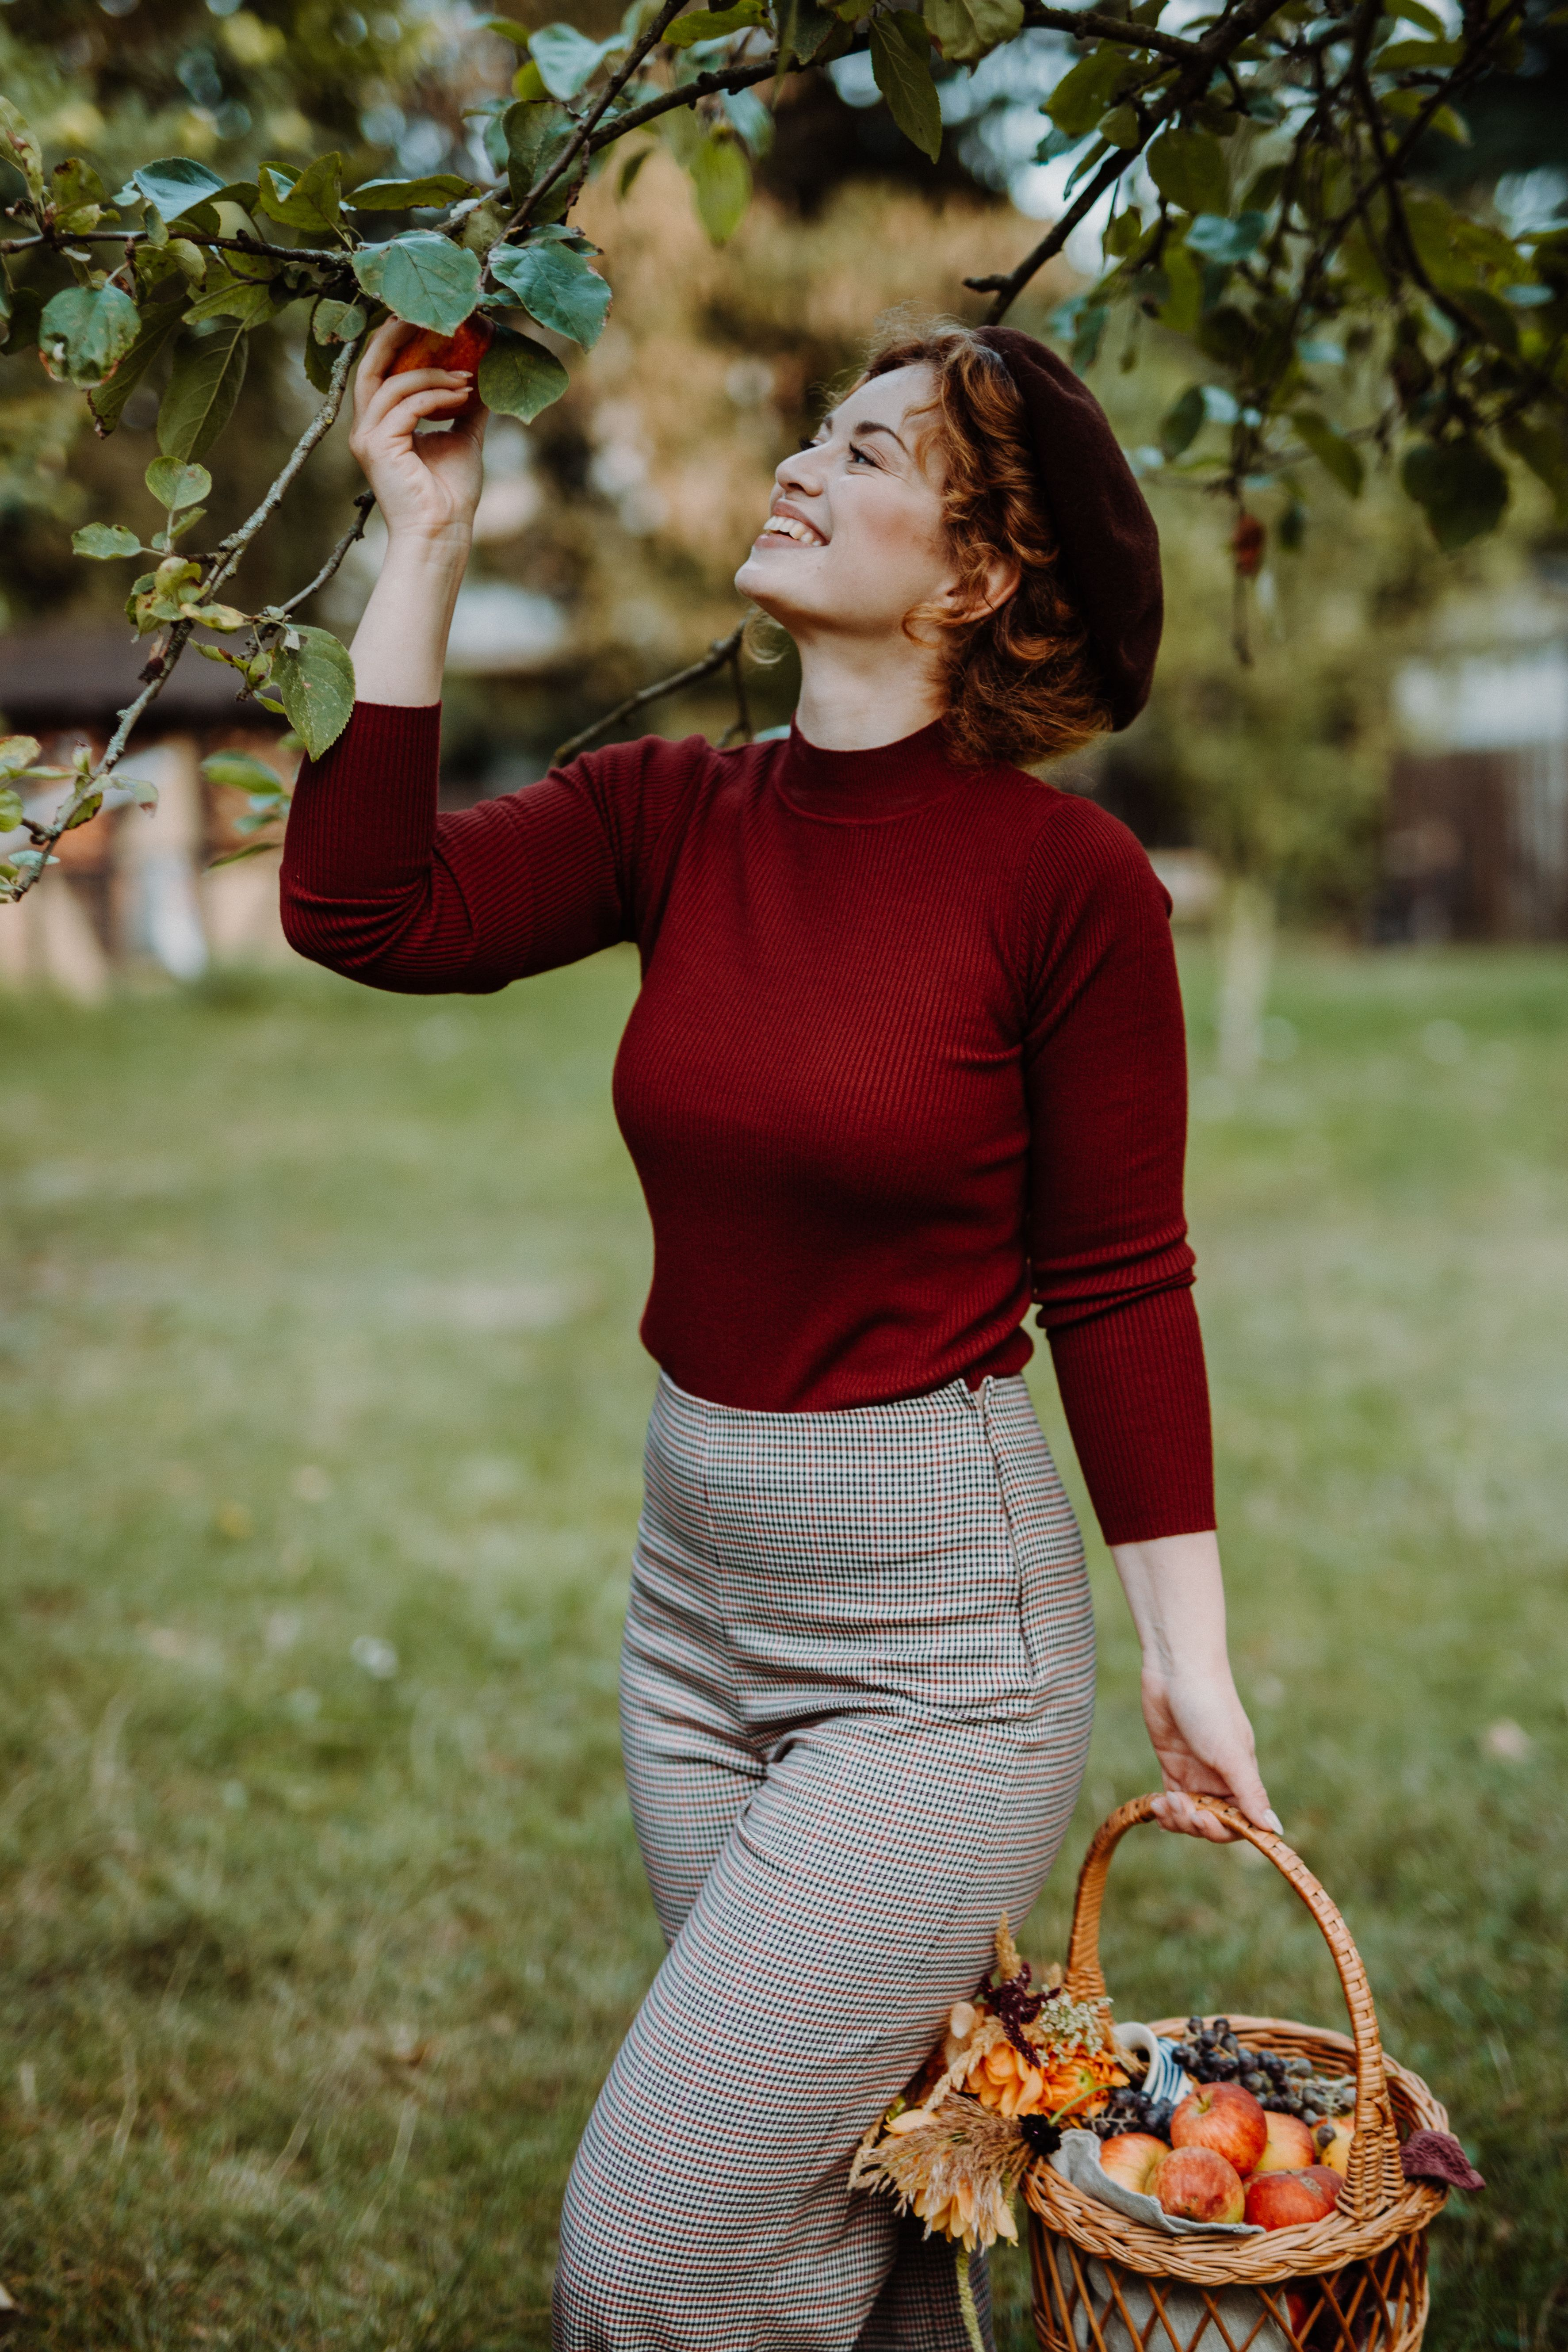 Pin Von Beautiful Thingsss Auf Vintage 2 Outfit Herbstshooting Victoria